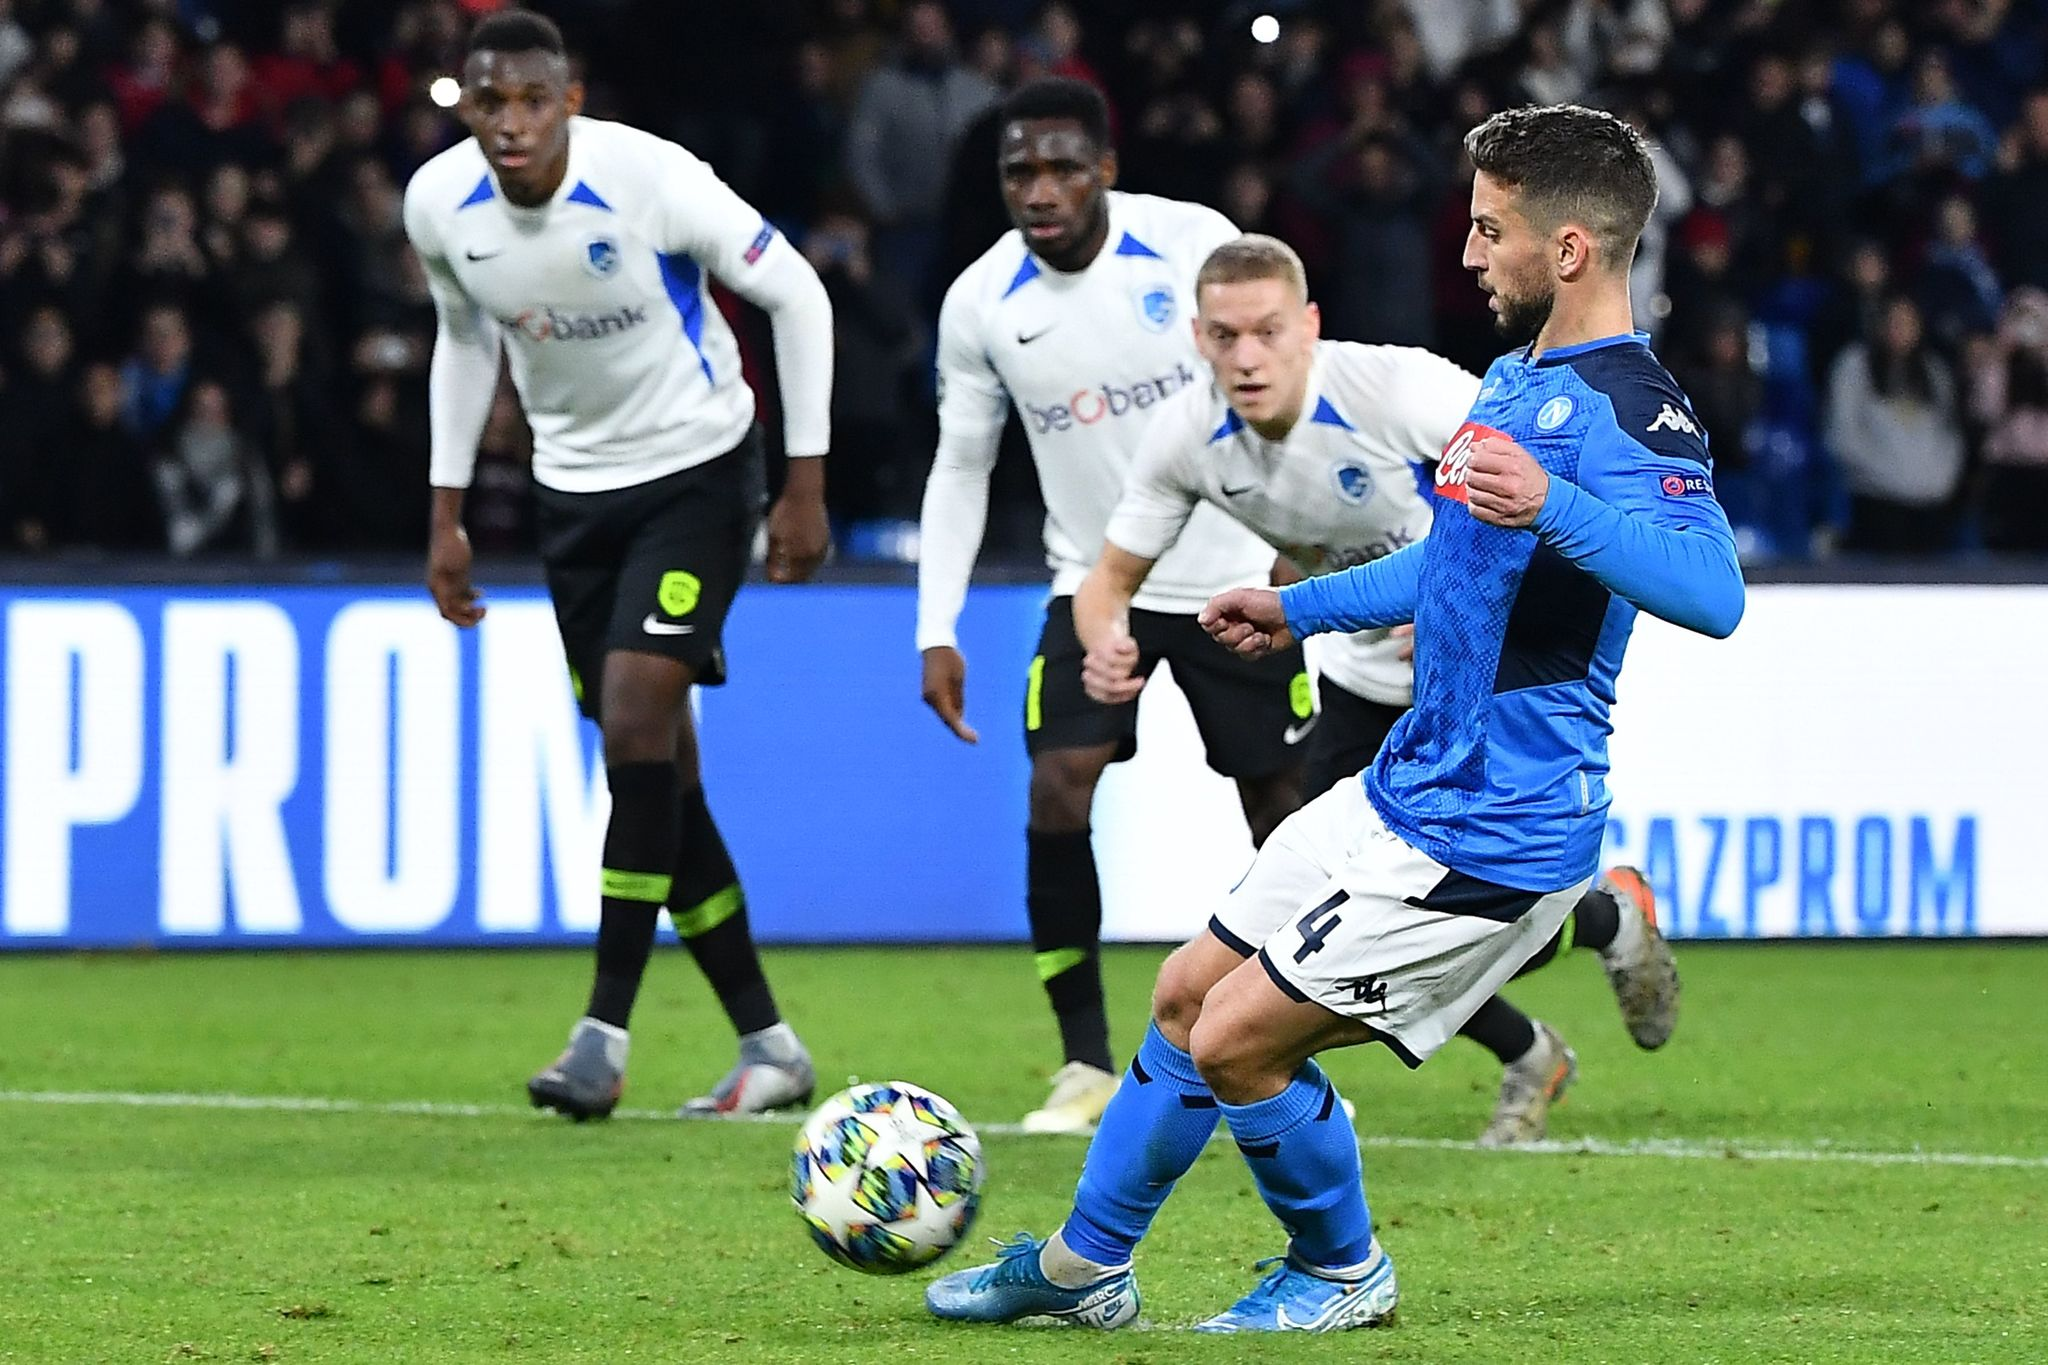 Napolis Belgian forward Dries <HIT>Mertens</HIT> (R) shoots to score a penalty during the UEFA Champions League Group E football match Napoli vs Genk on December 10, 2019 at the San Paolo stadium in Naples. (Photo by Tiziana FABI / AFP)